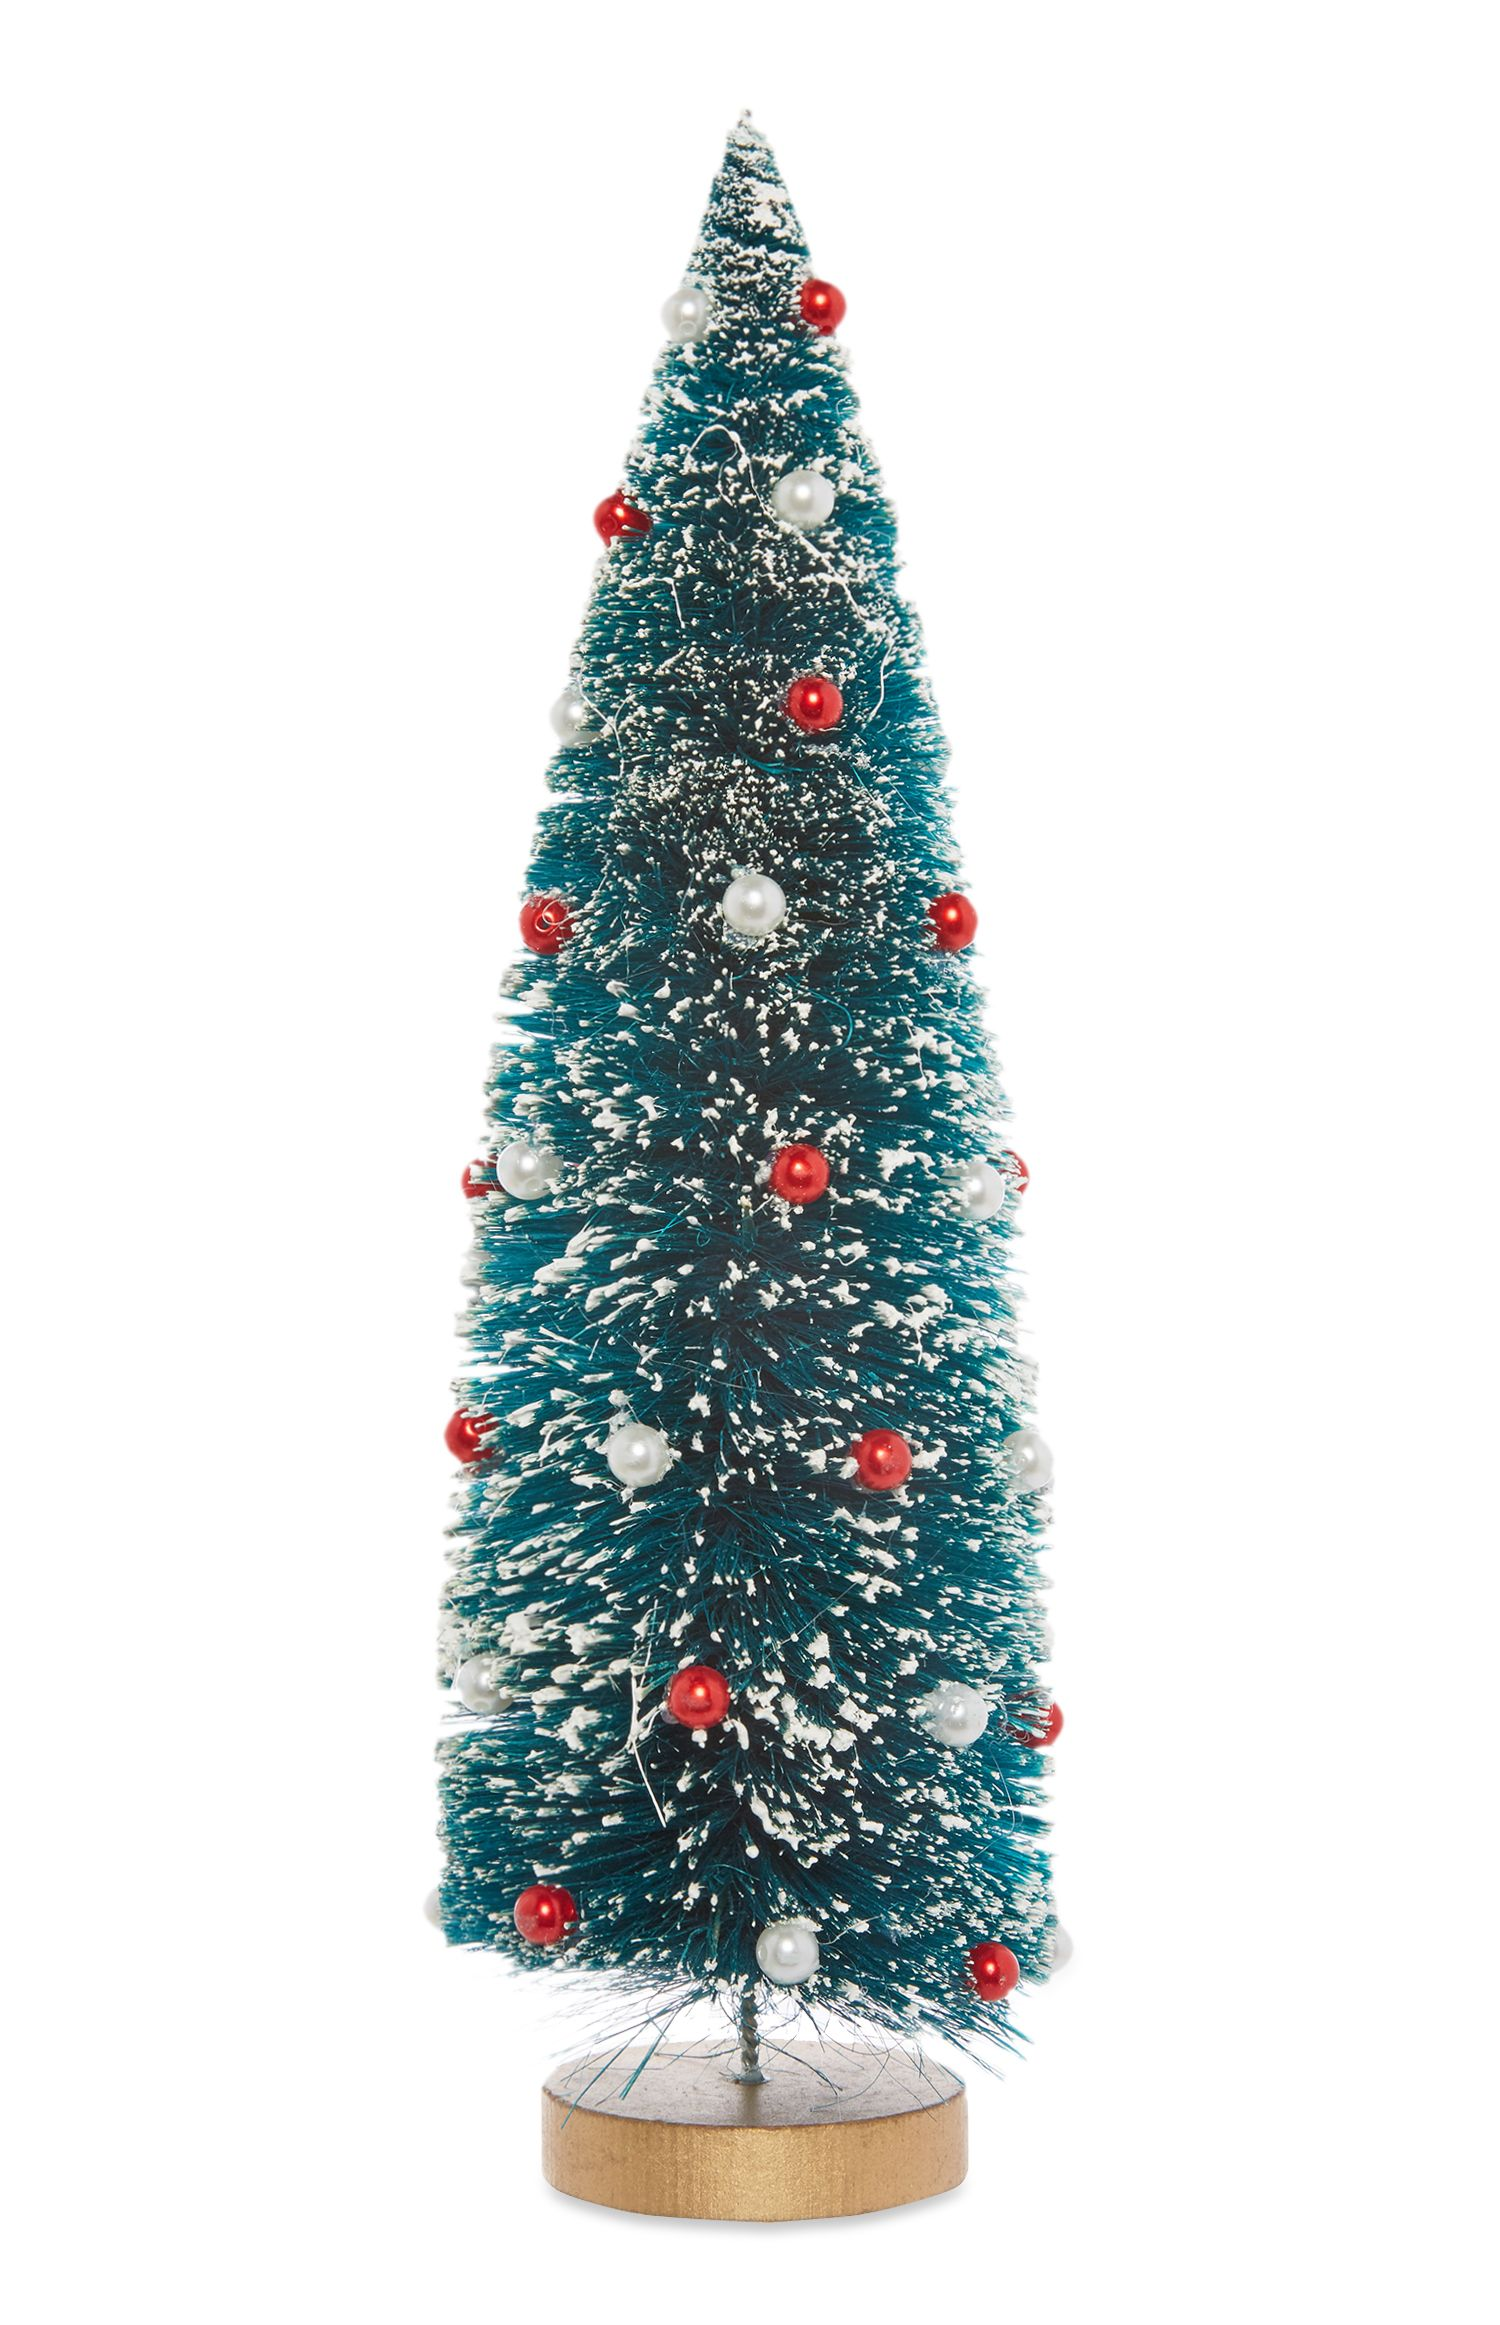 Primarks Full Christmas Decoration Range Is Here And We Want It All